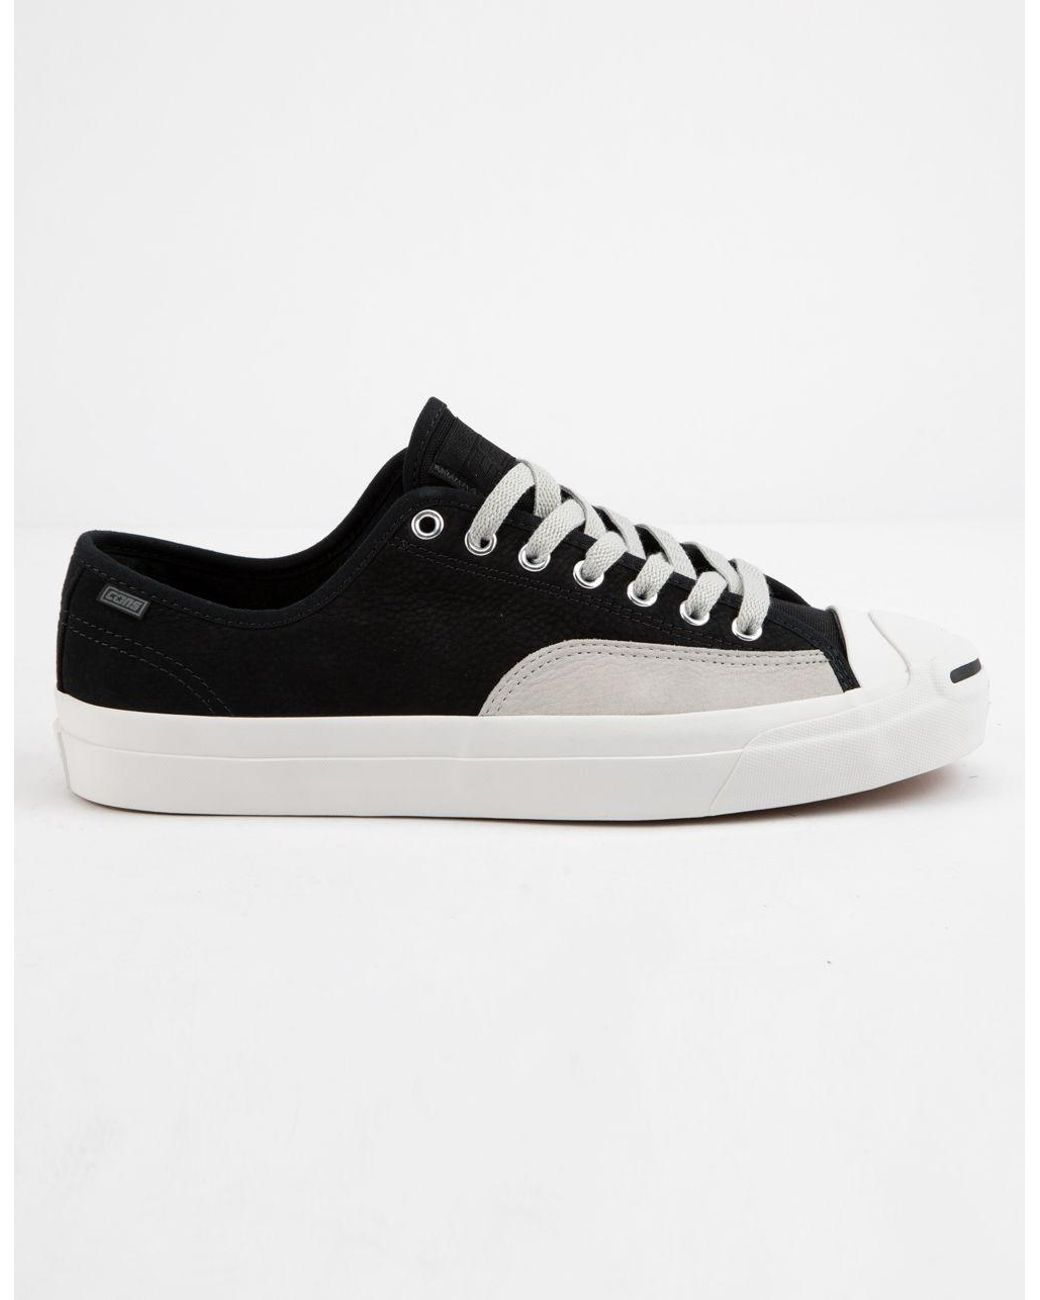 2c365998d9c1 Lyst - Converse Jack Purcell Pro Leather Low Top Shoes in Black